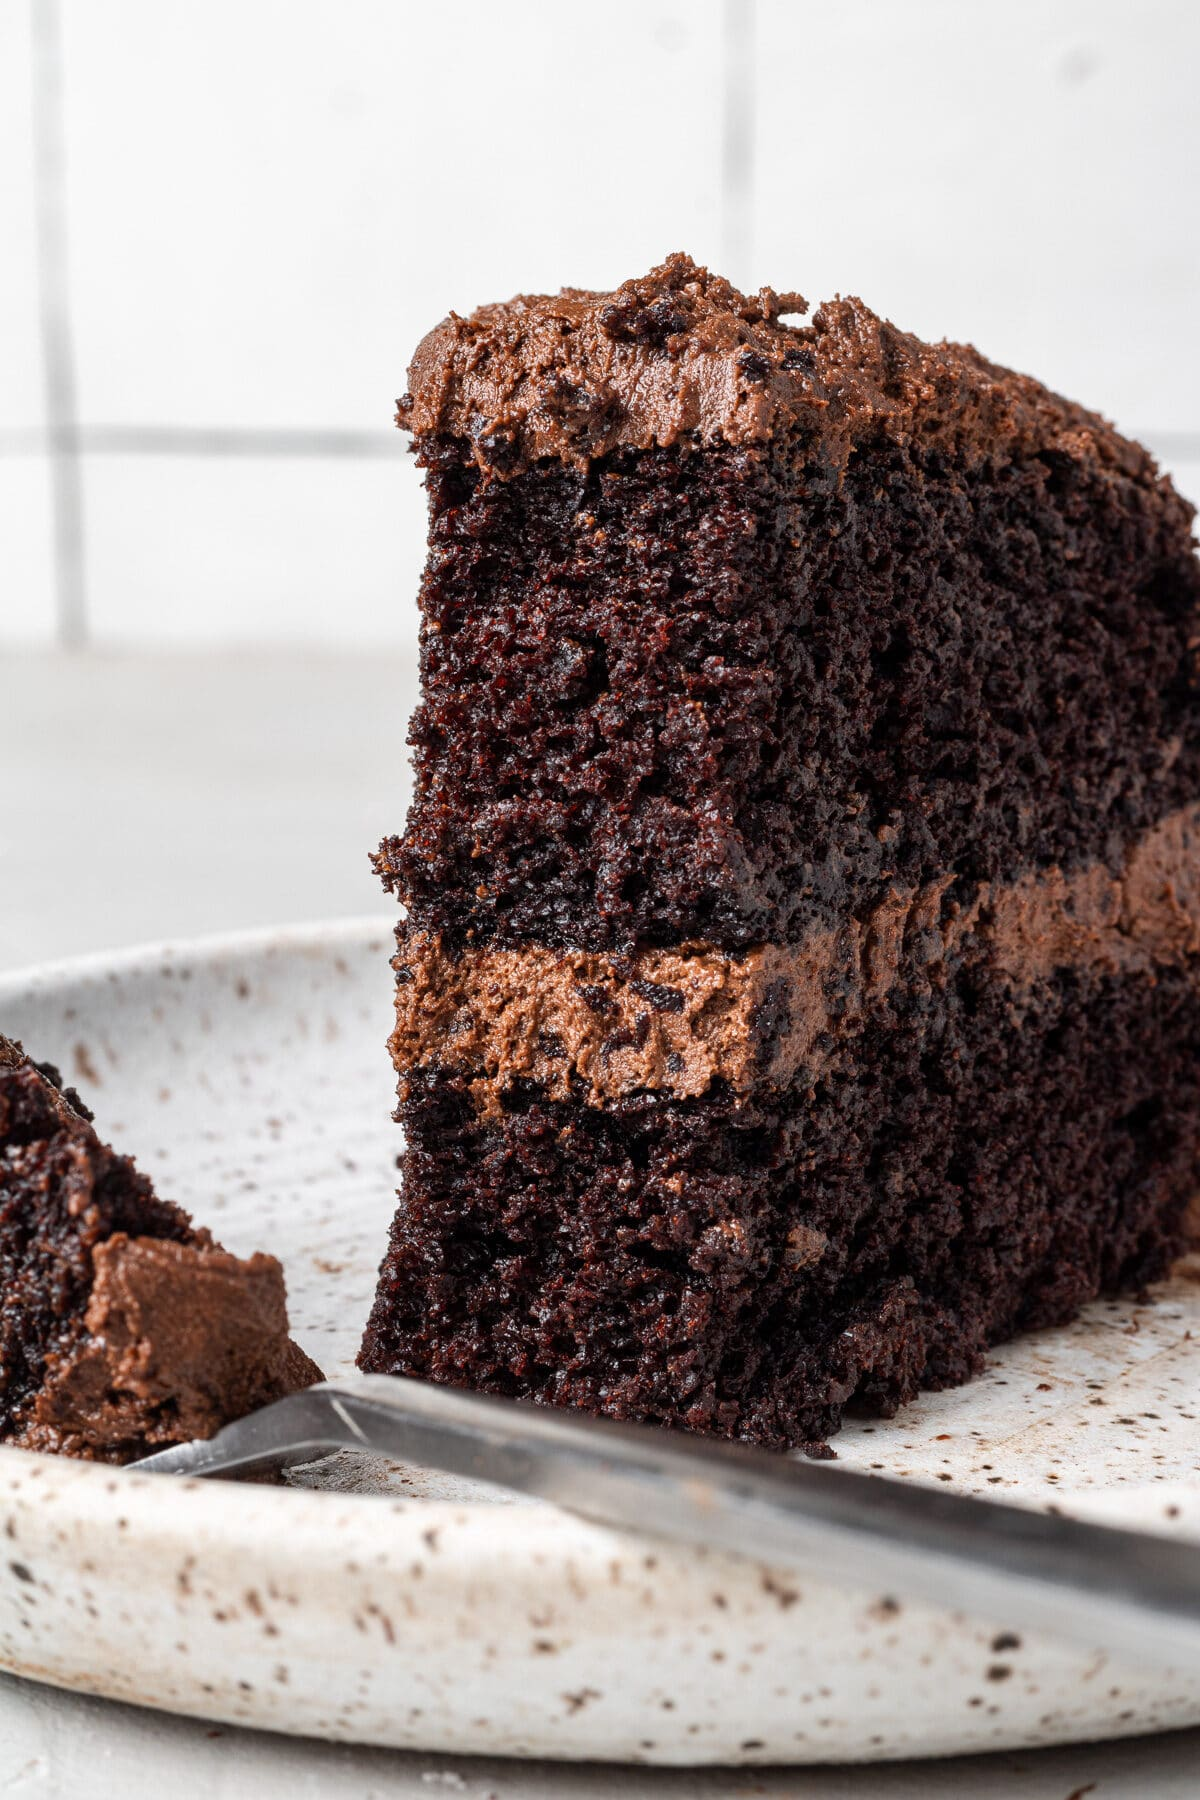 a piece of dairy free chocolate cake on a plate with a bite taken out of it and a fork on the plate